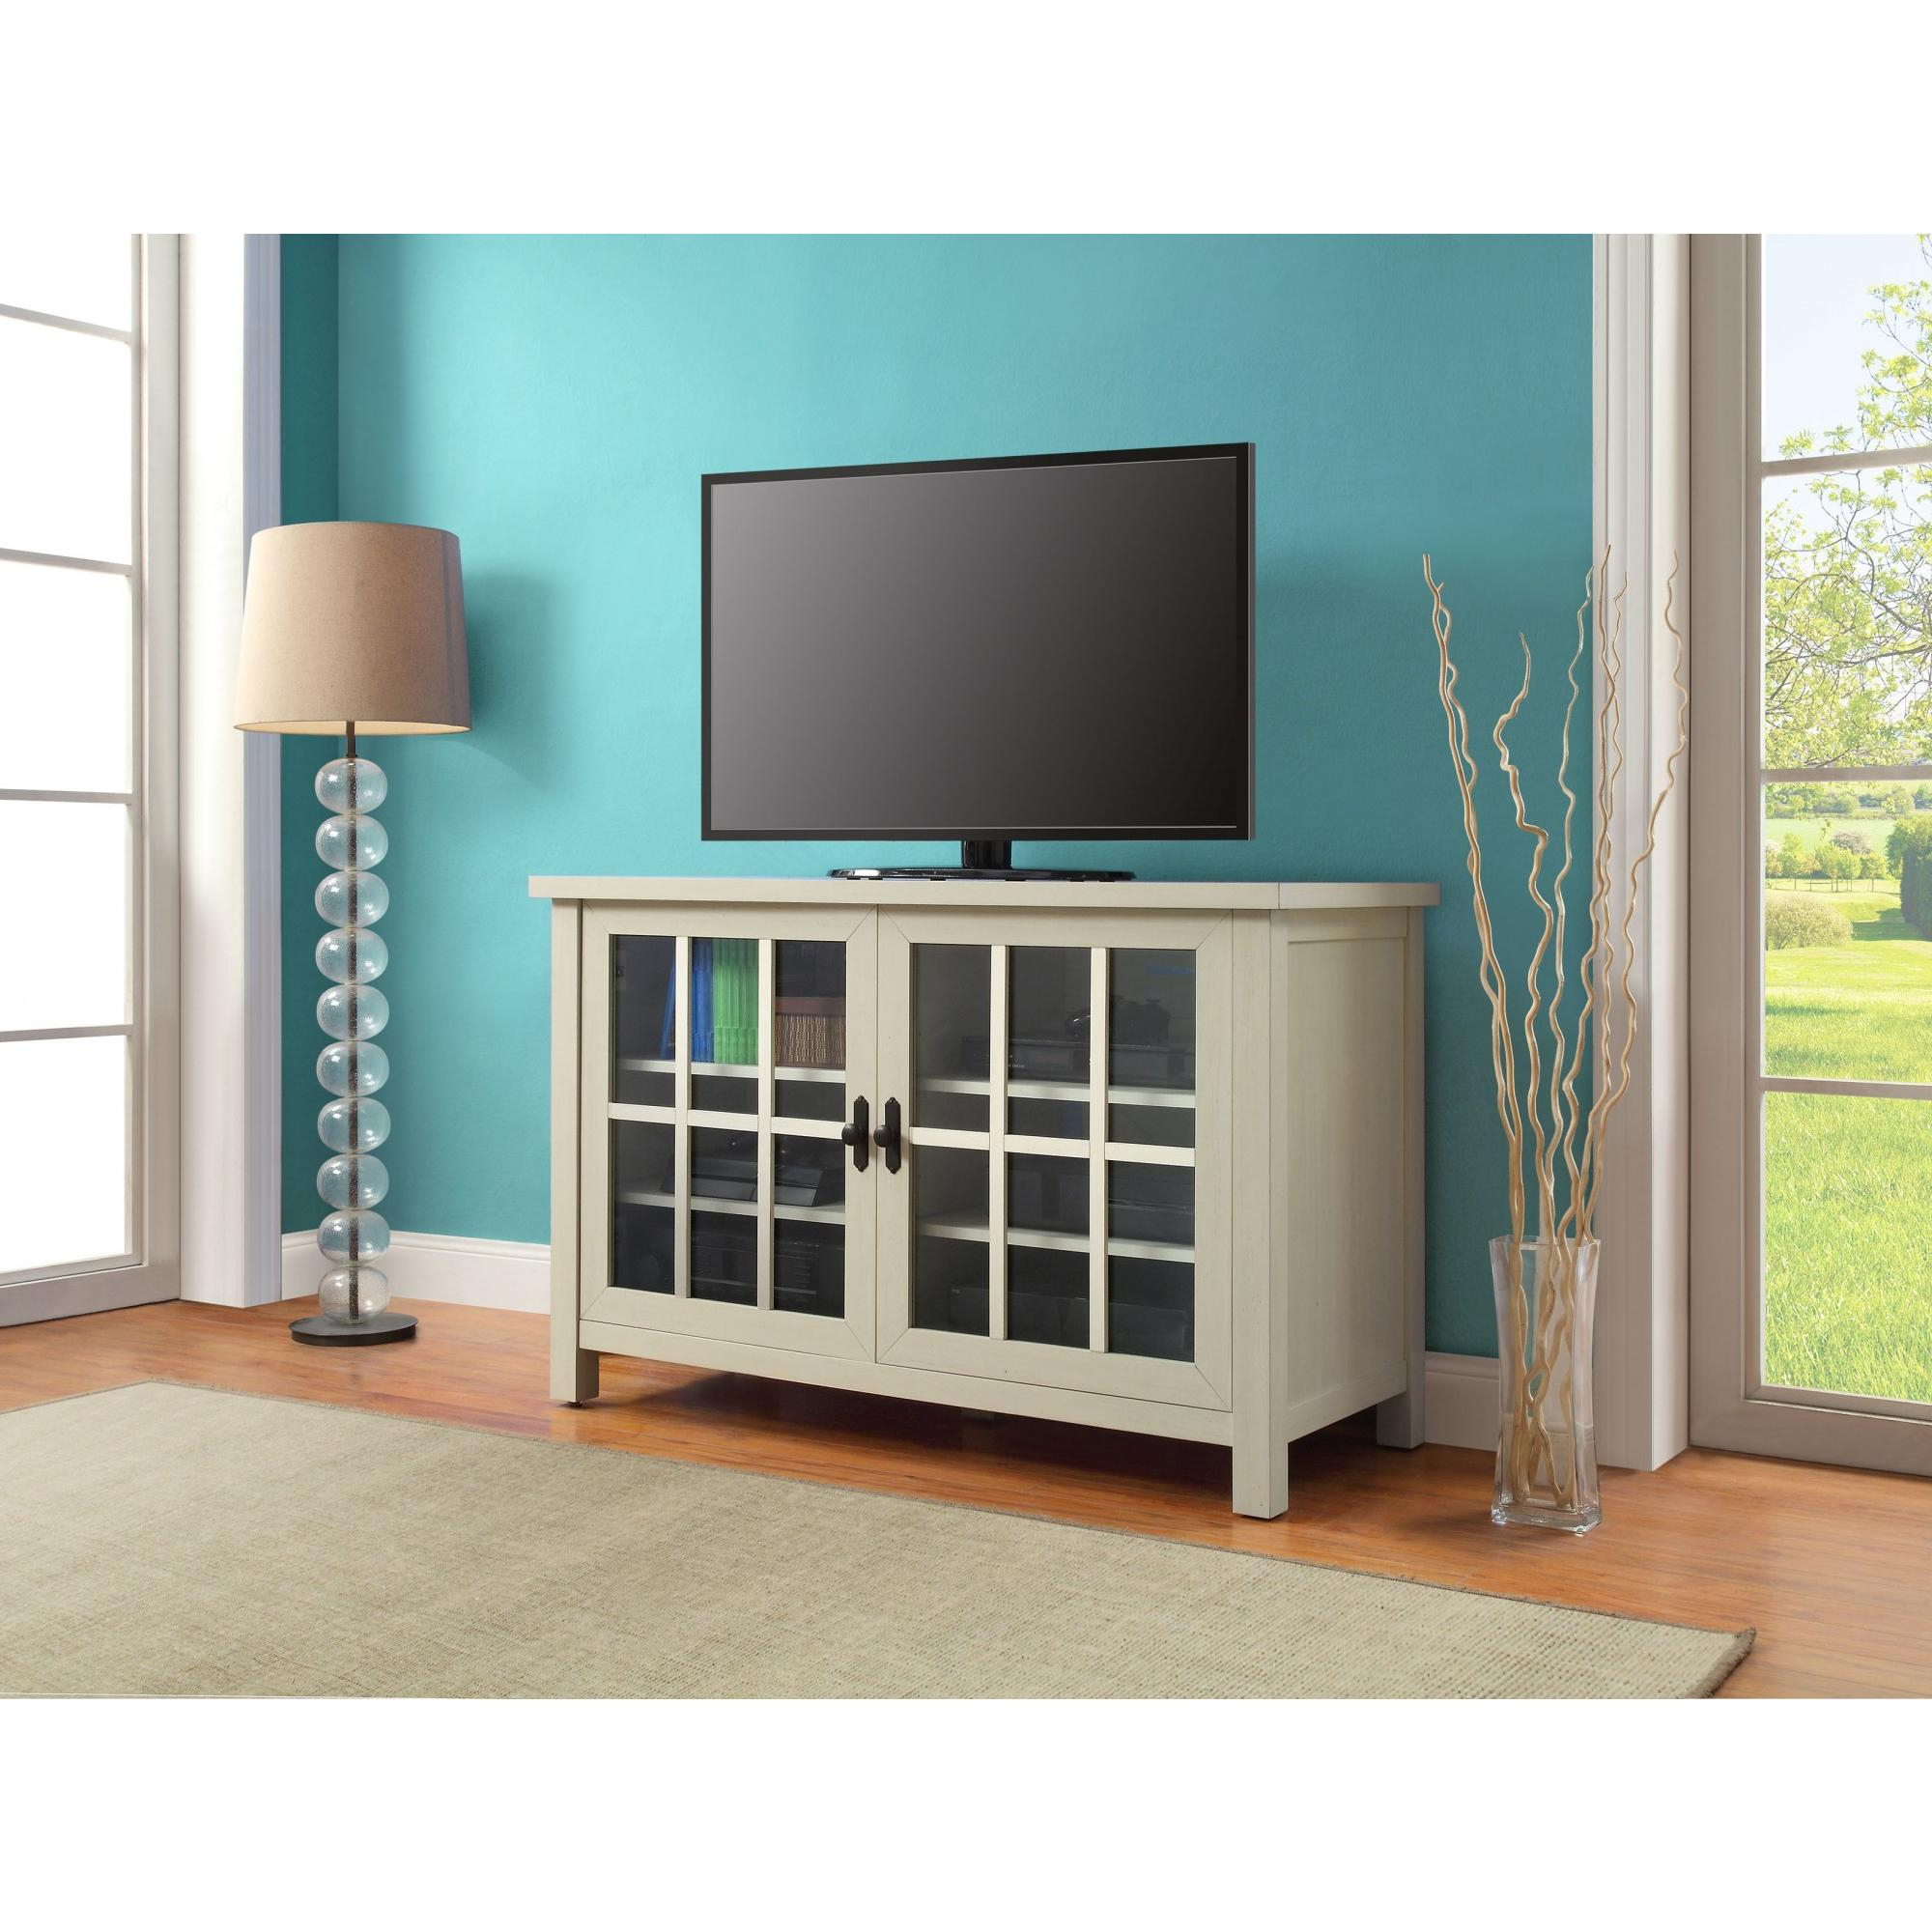 Most Popular Better Homes And Gardens Oxford Square Tv Console For Tvs Up To 55 Inside Oxford 84 Inch Tv Stands (Gallery 3 of 20)